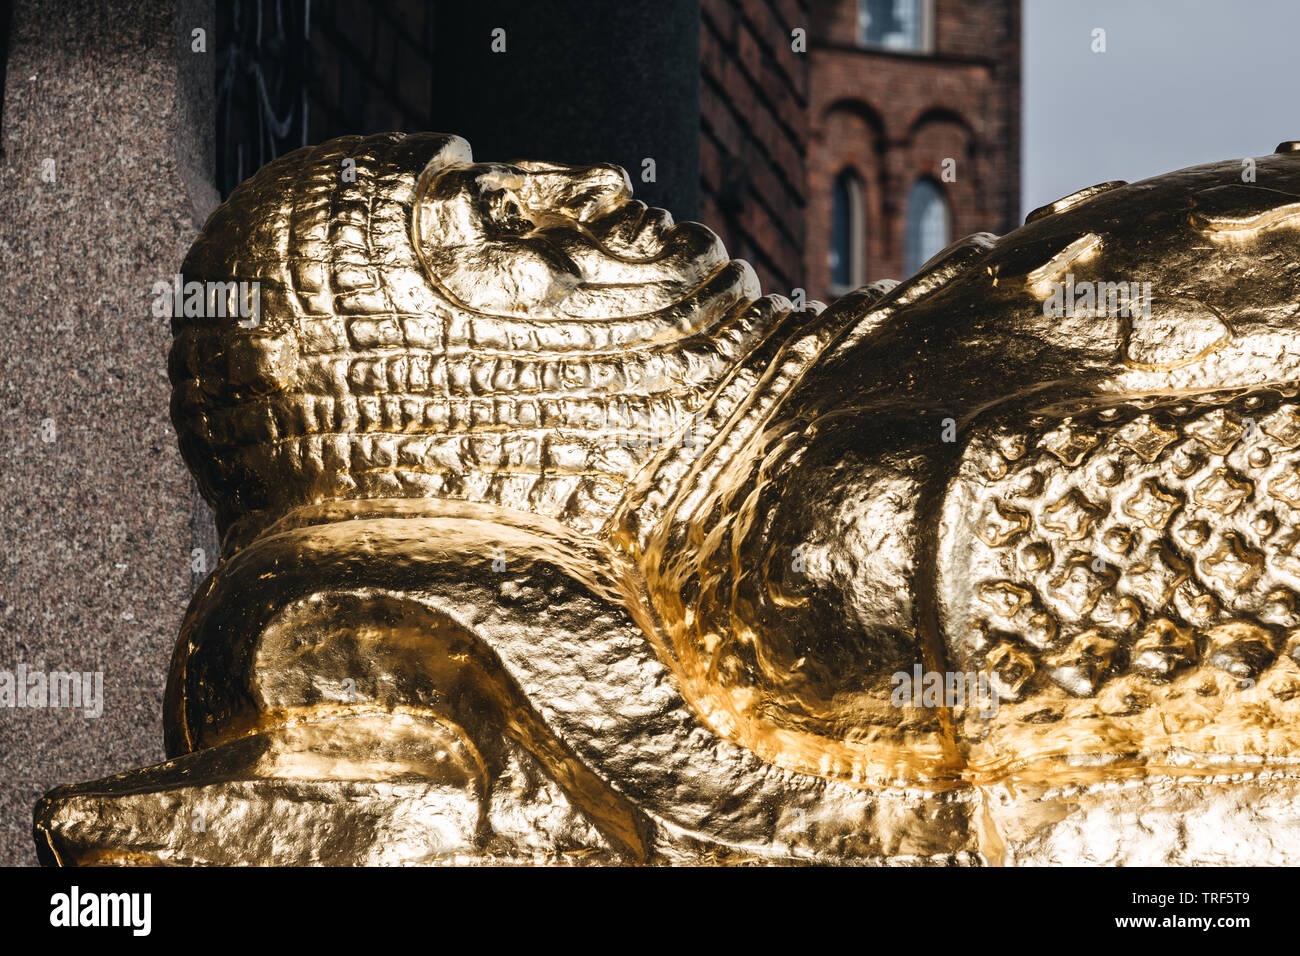 Editorial 03.27.2019 Stockholm Sweden Golden head of Birger Jarl, the founder of the city - Stock Image